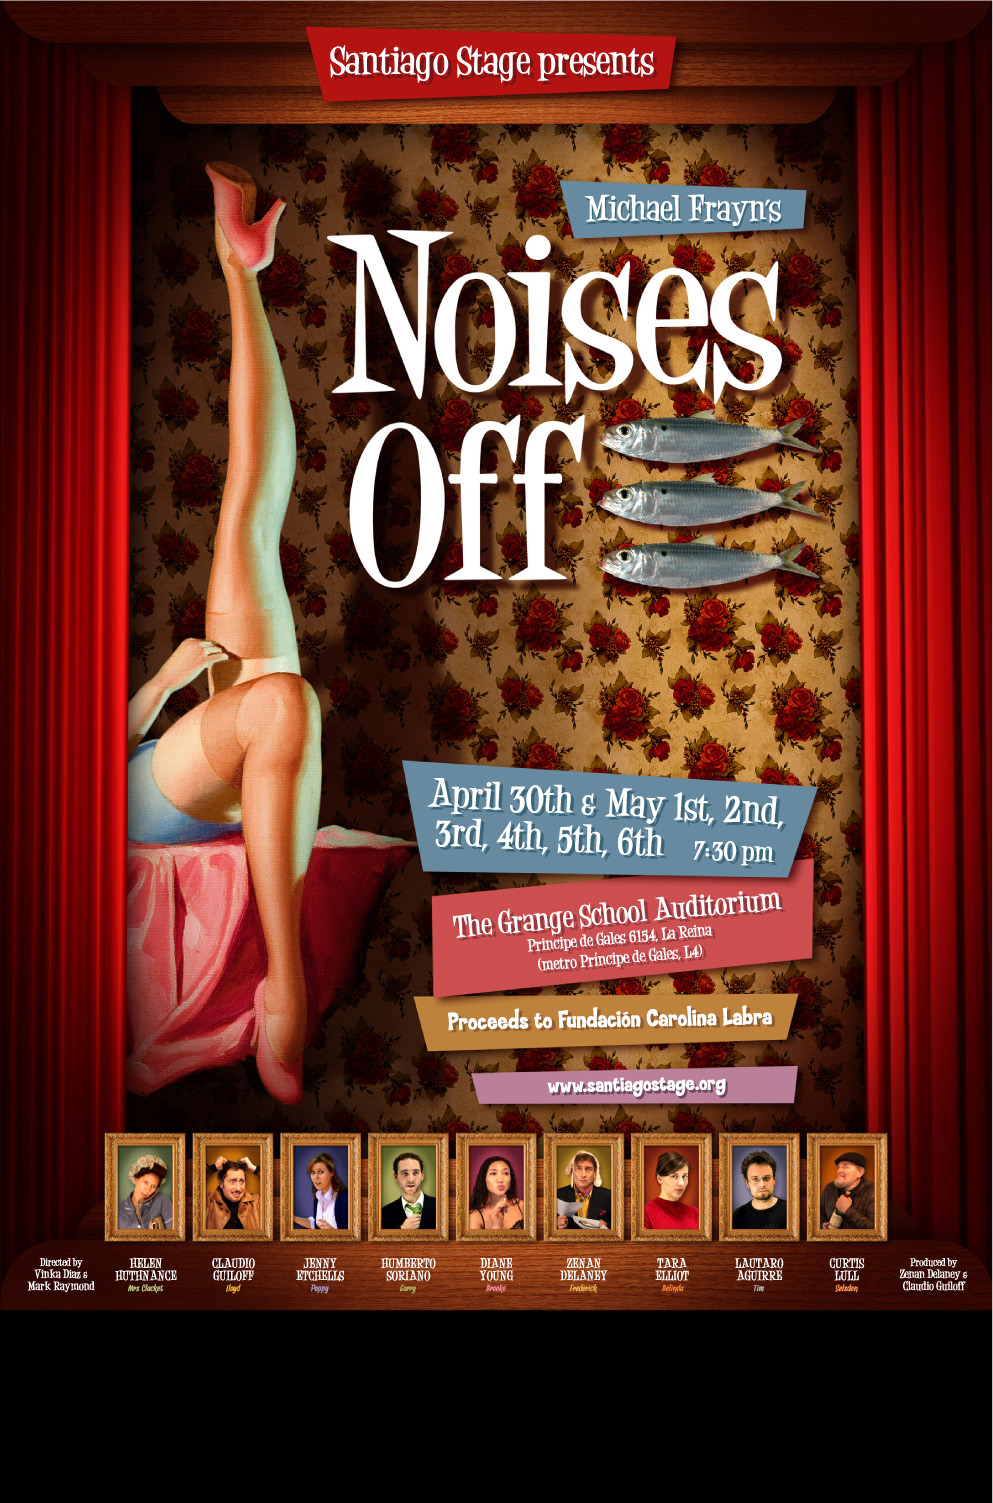 Noises off movie cast